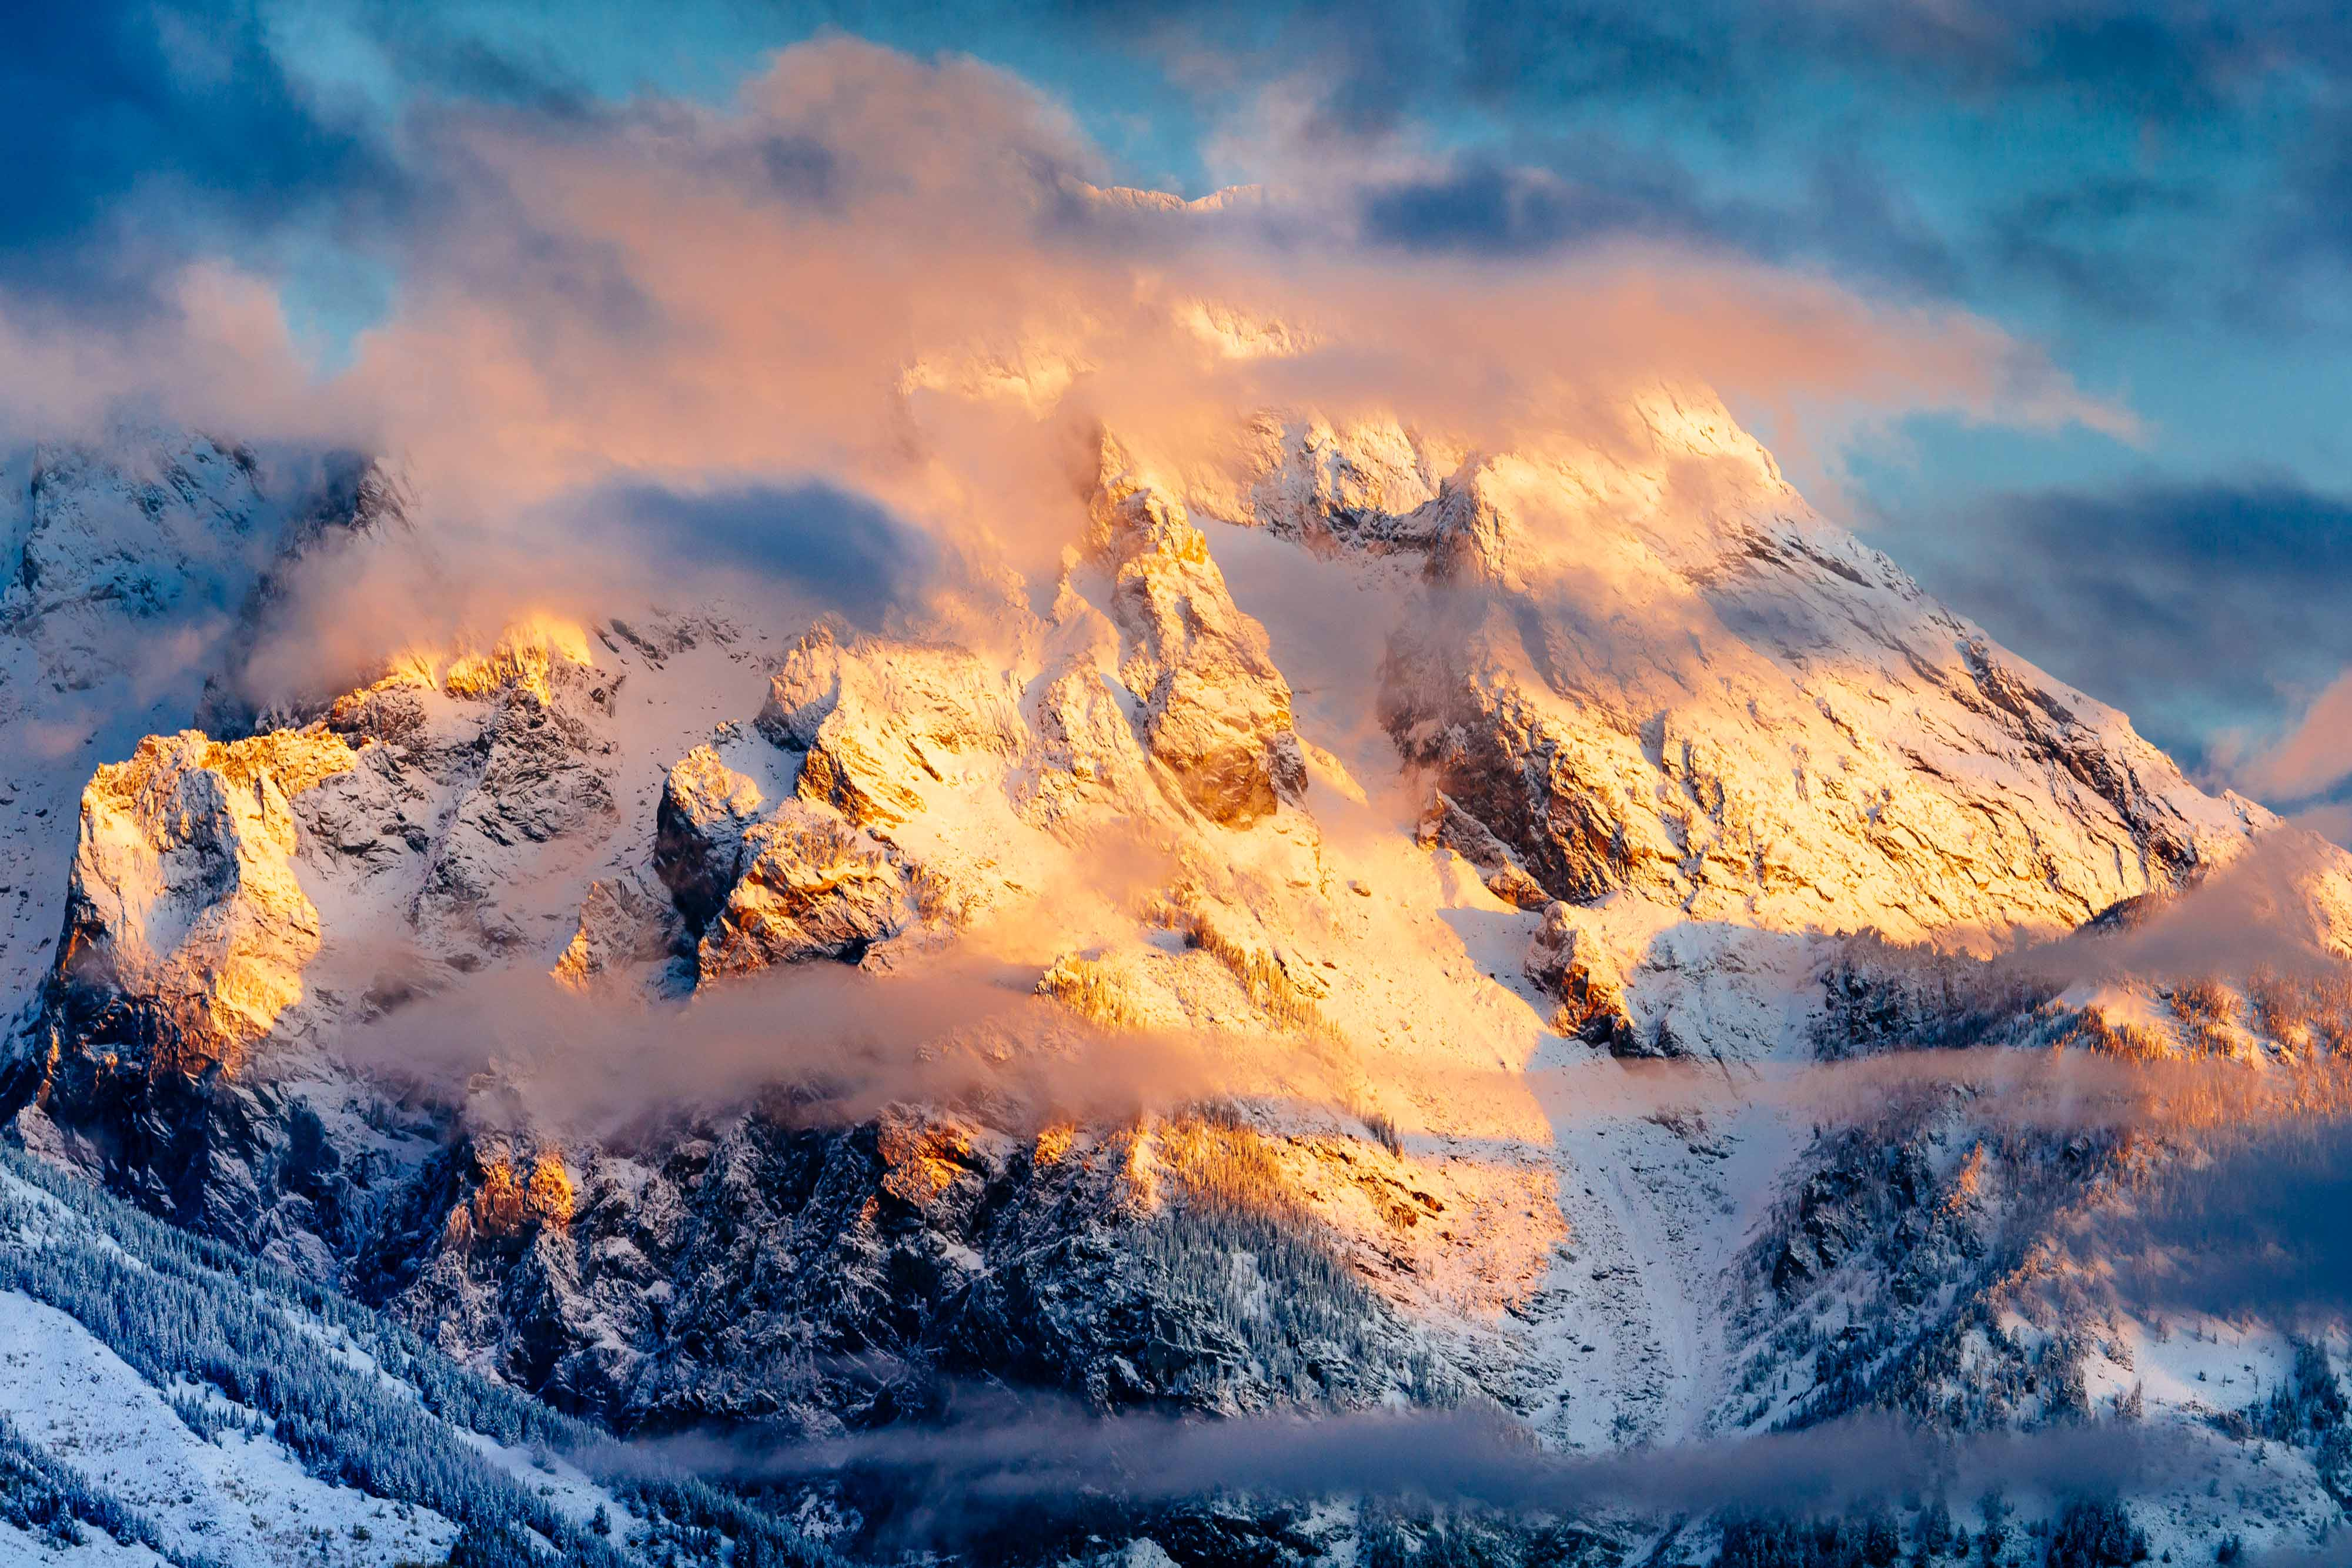 Teton Photographer Resource